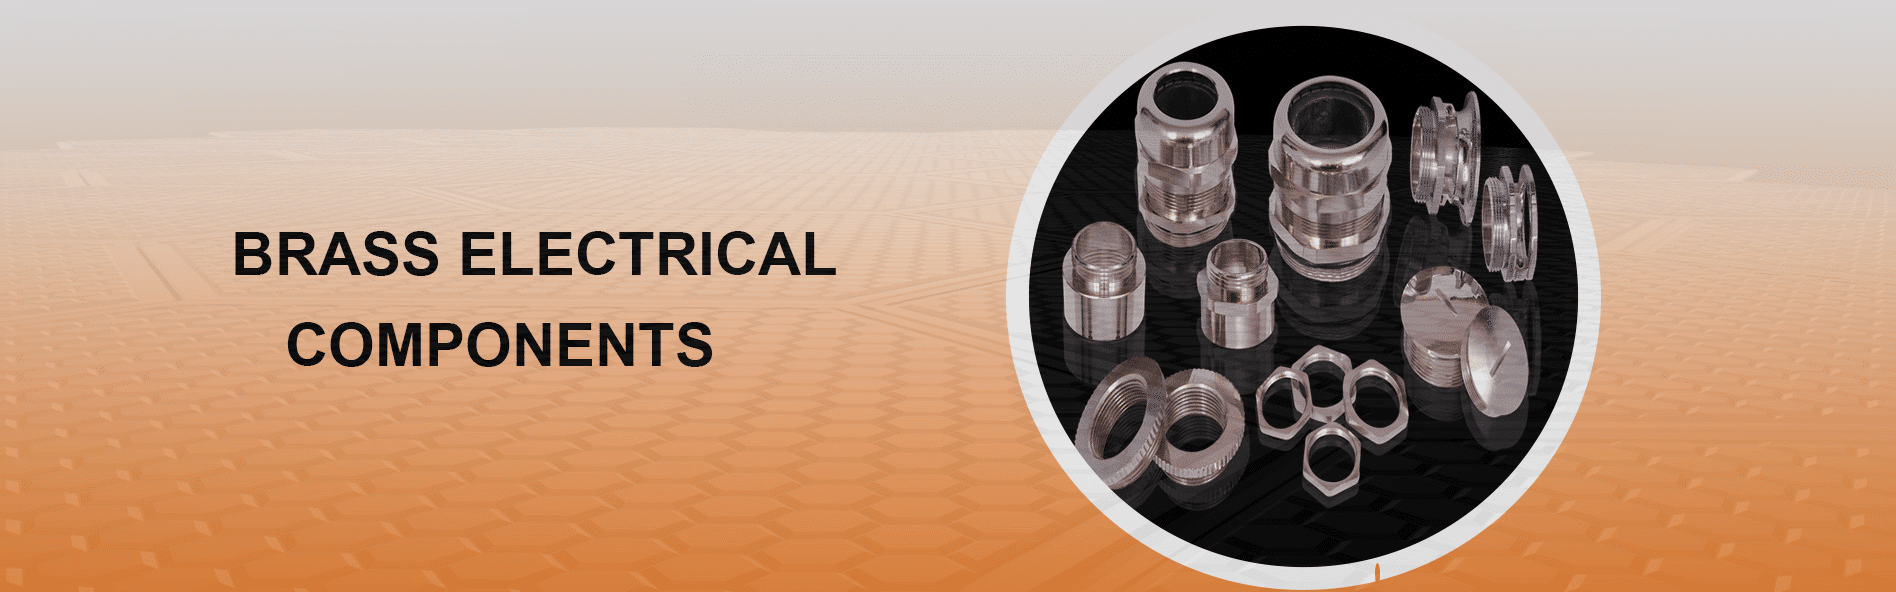 Brass Electrical Components Manufacturer In India , Kuwait, Pakistan, Qatar, Syria